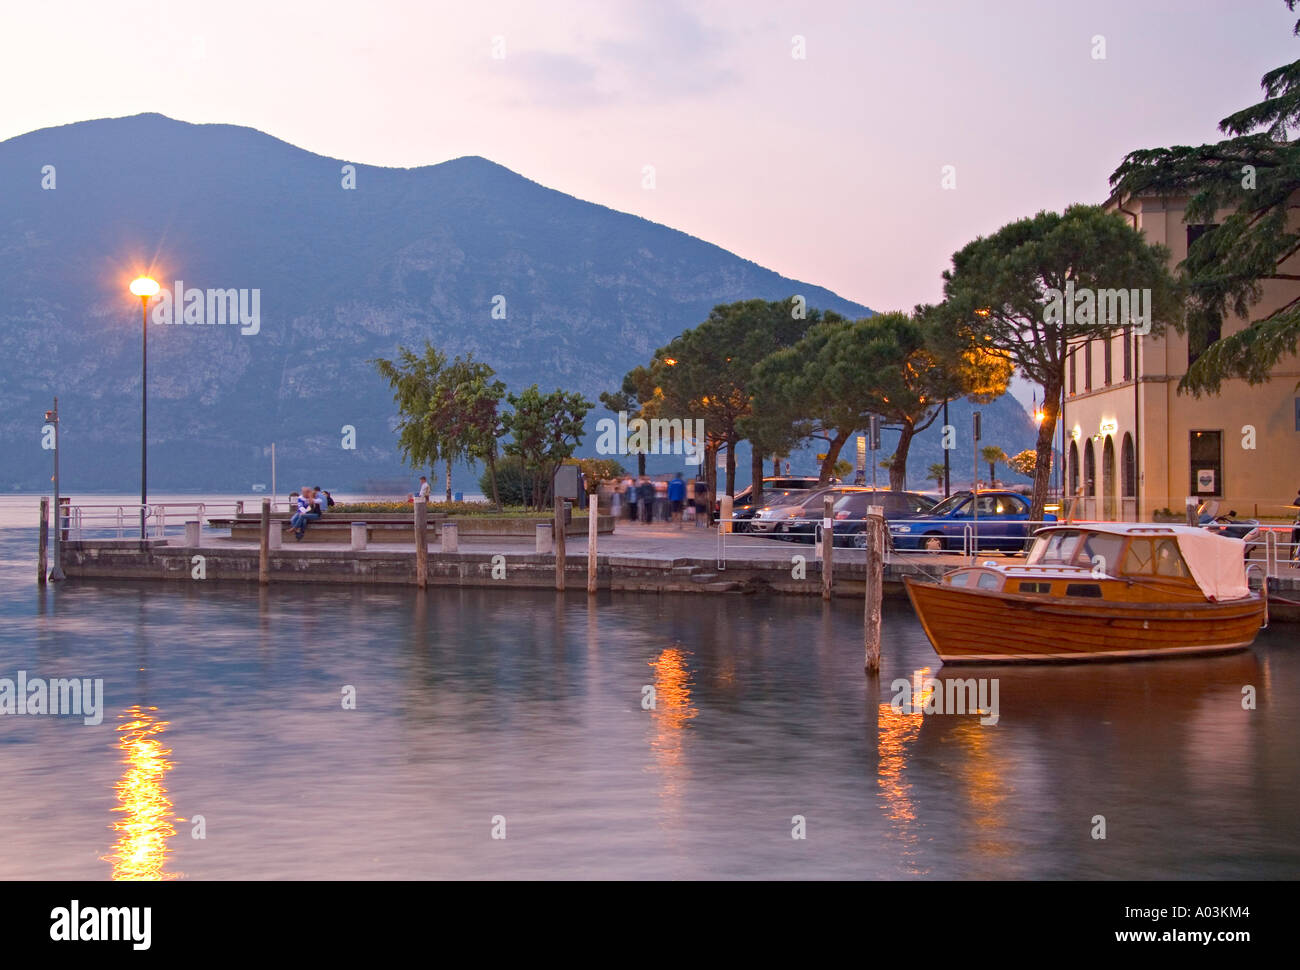 Iseo, Lago d'Iseo, Lombardy, Italy - Stock Image